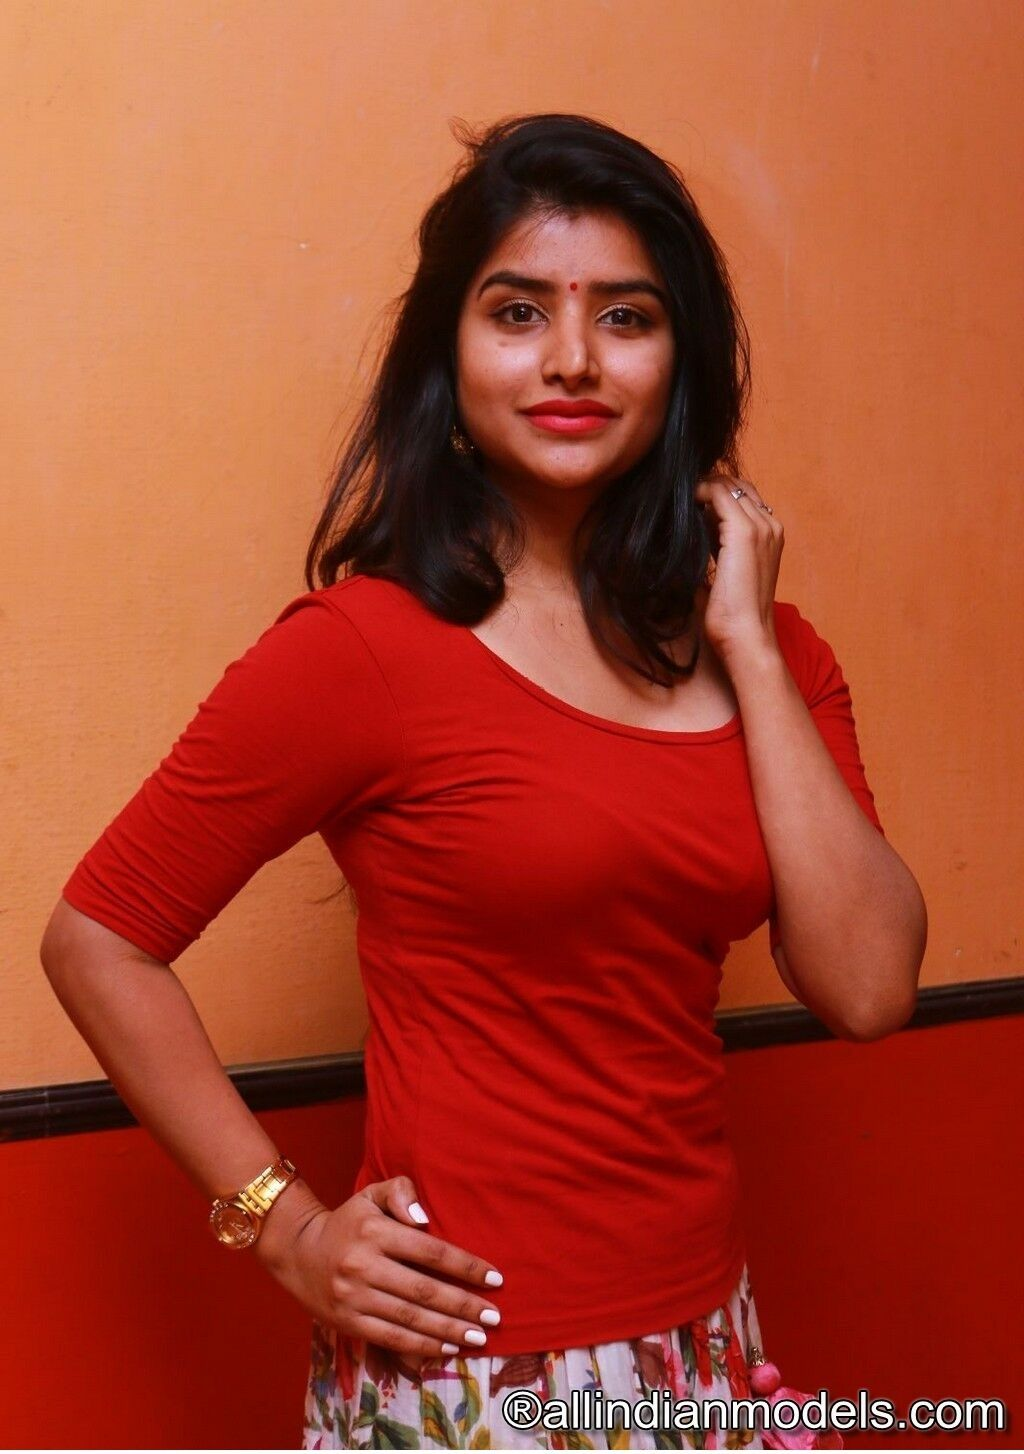 Ashmitha Hot Sexy Unseen Photo Gallery | All Indian beauties and ...